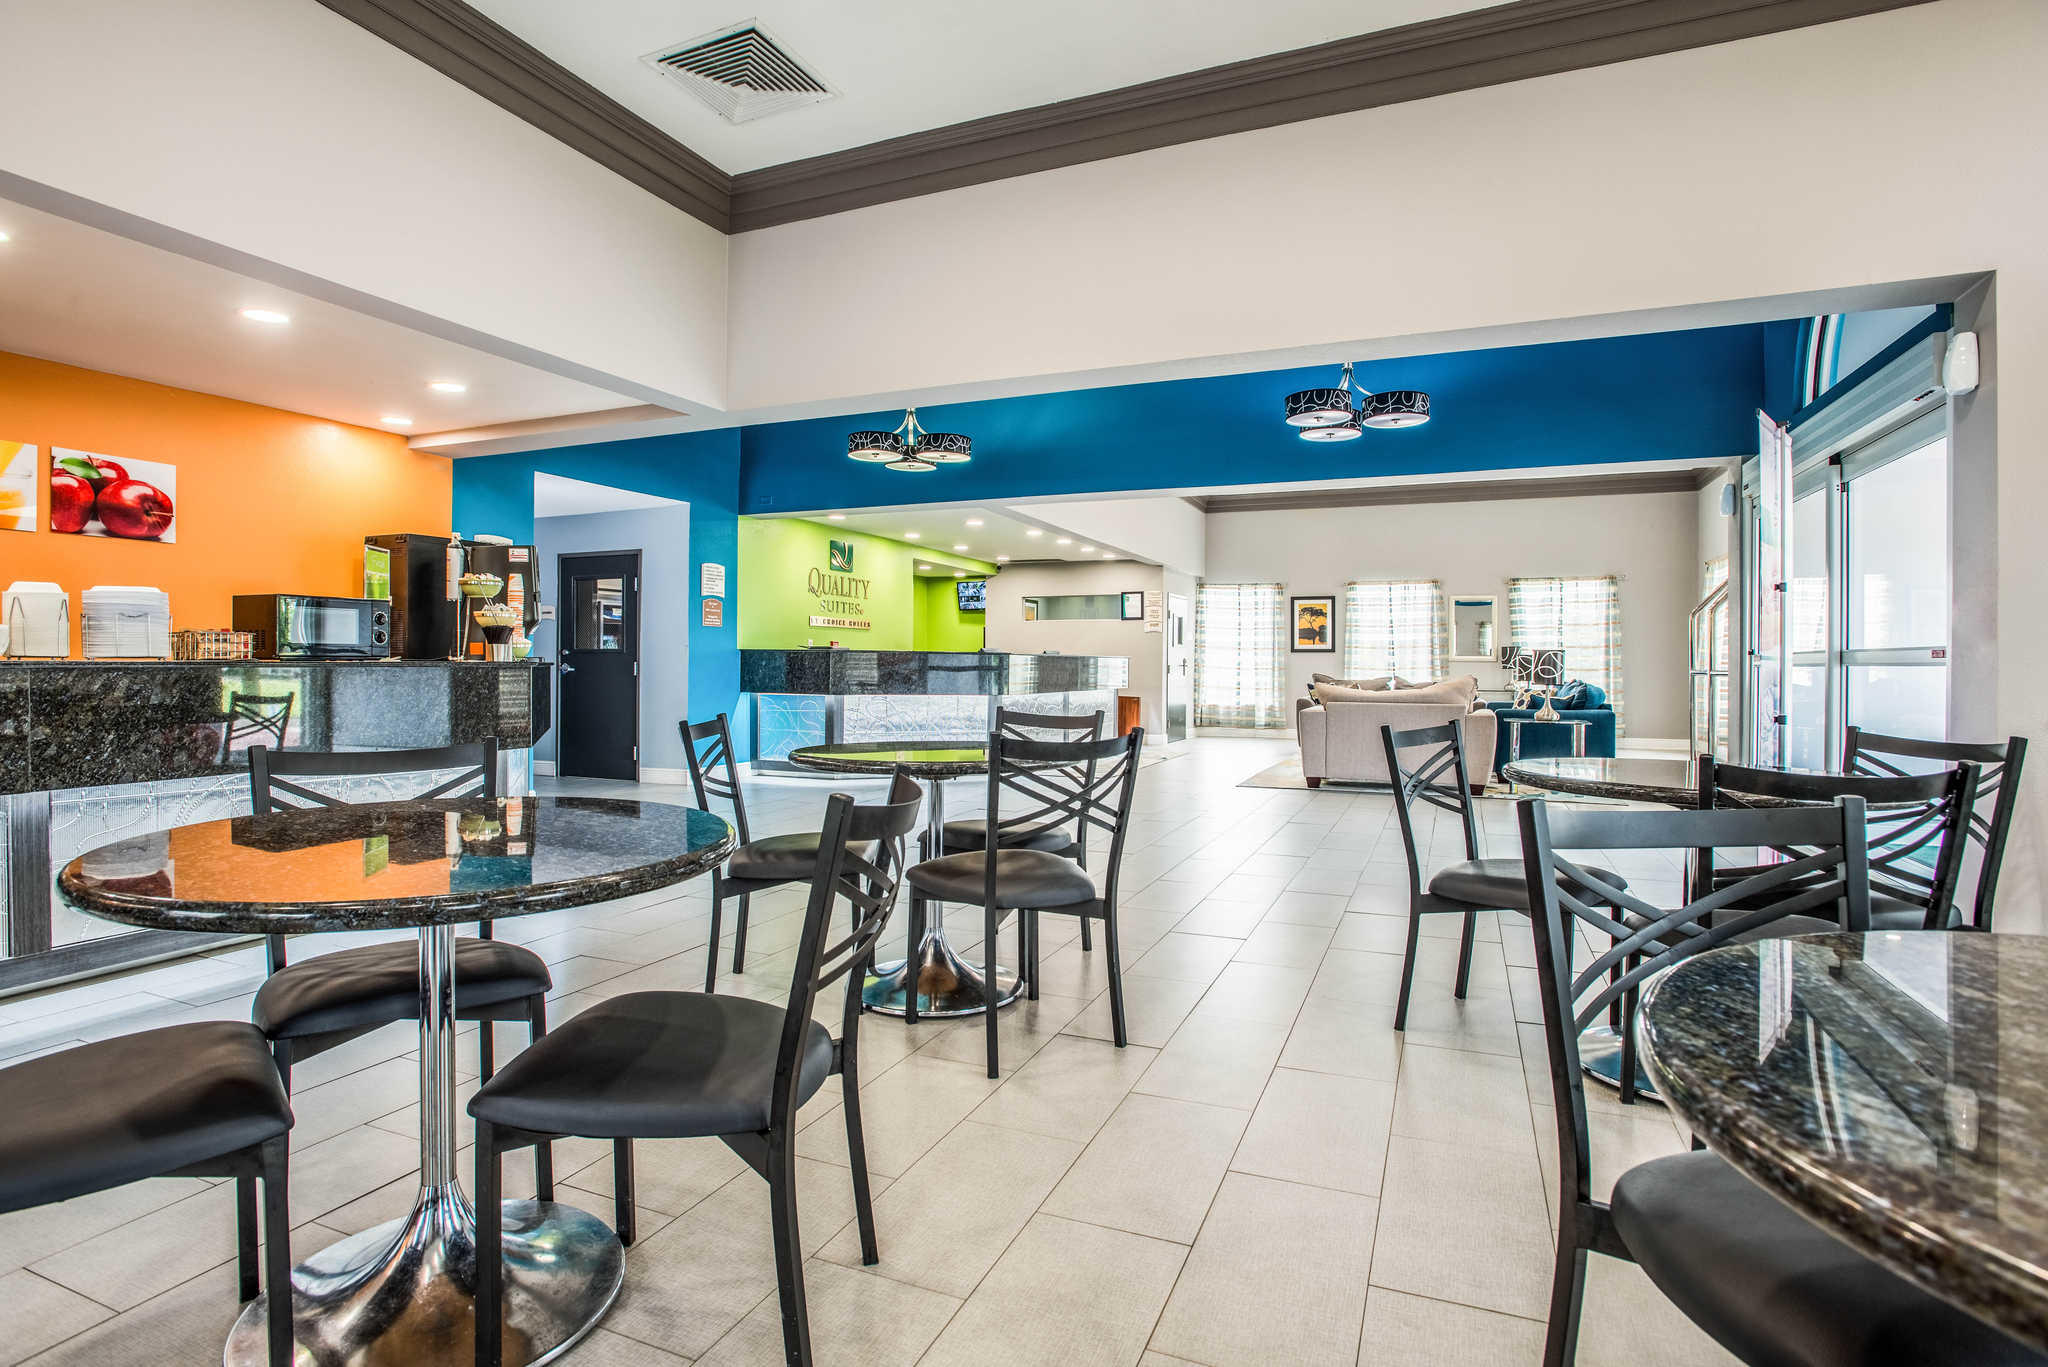 Hotels In Lake Charles La With Indoor Pool